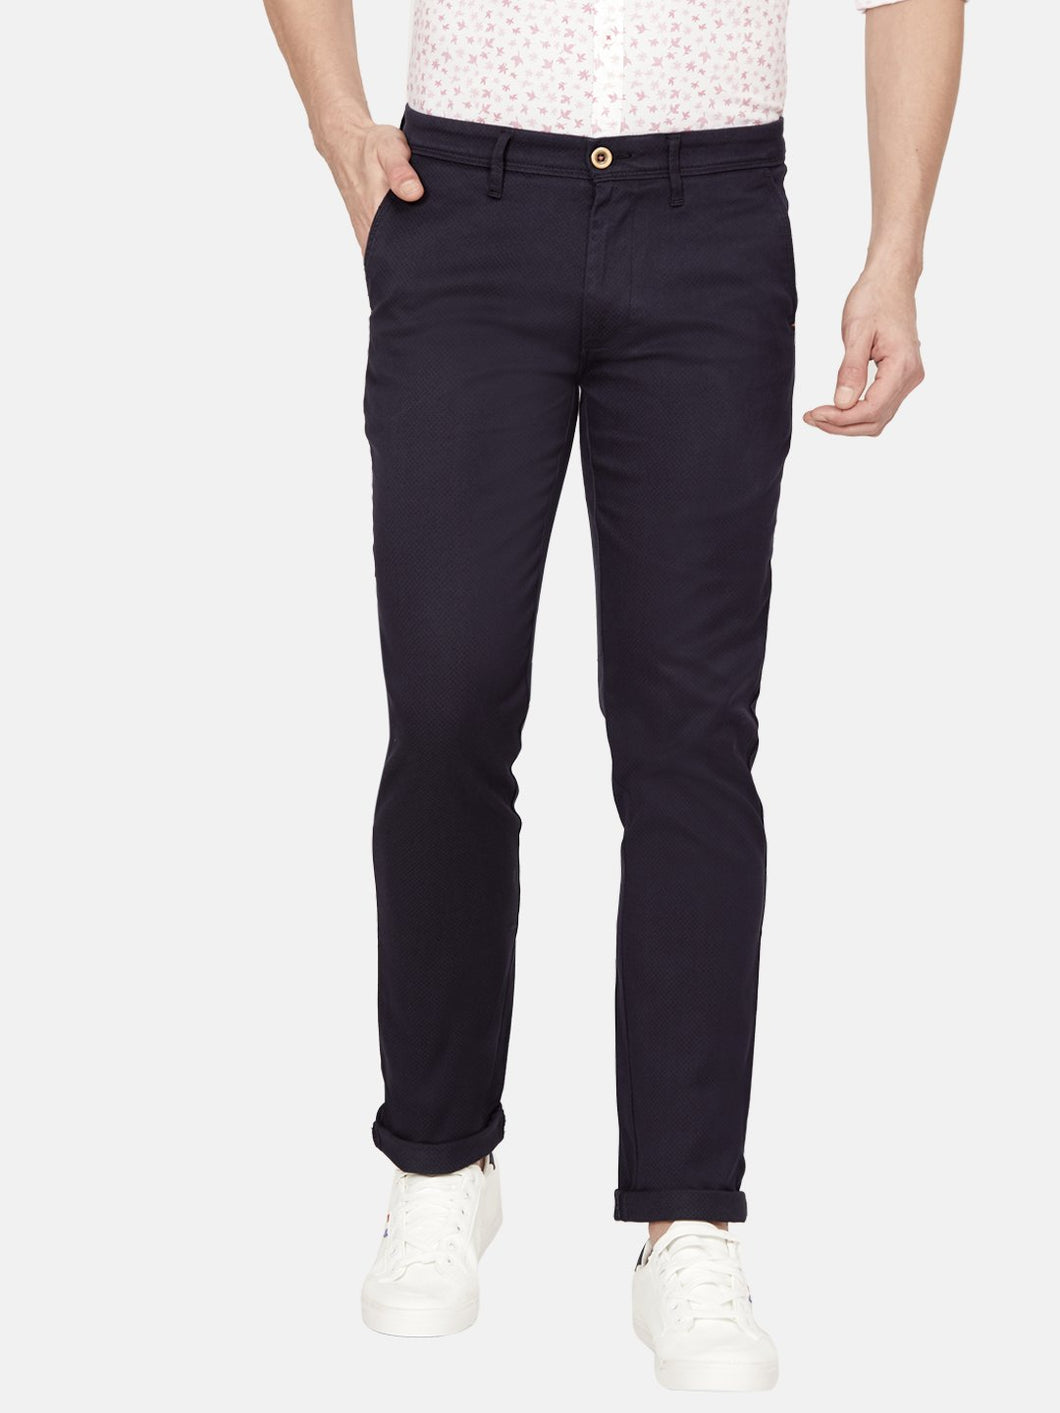 Men's Stretchable Slim-fit Casual Trousers-H4636BNavy Blue